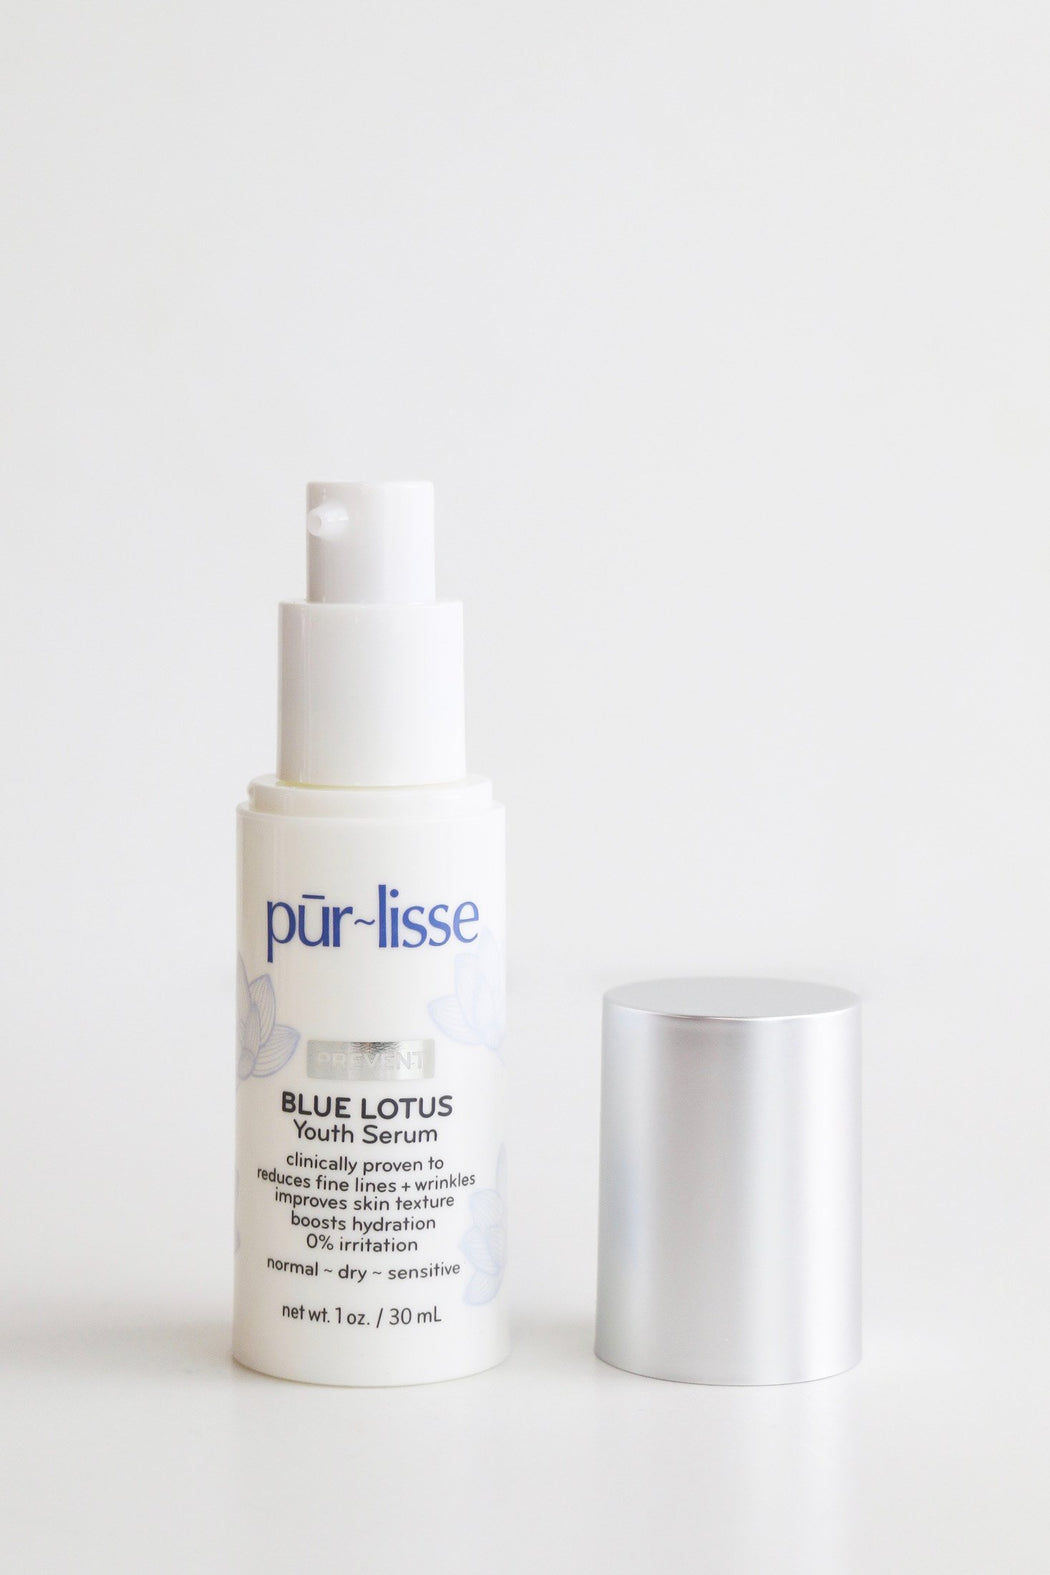 BLUE LOTUS Youth Serum